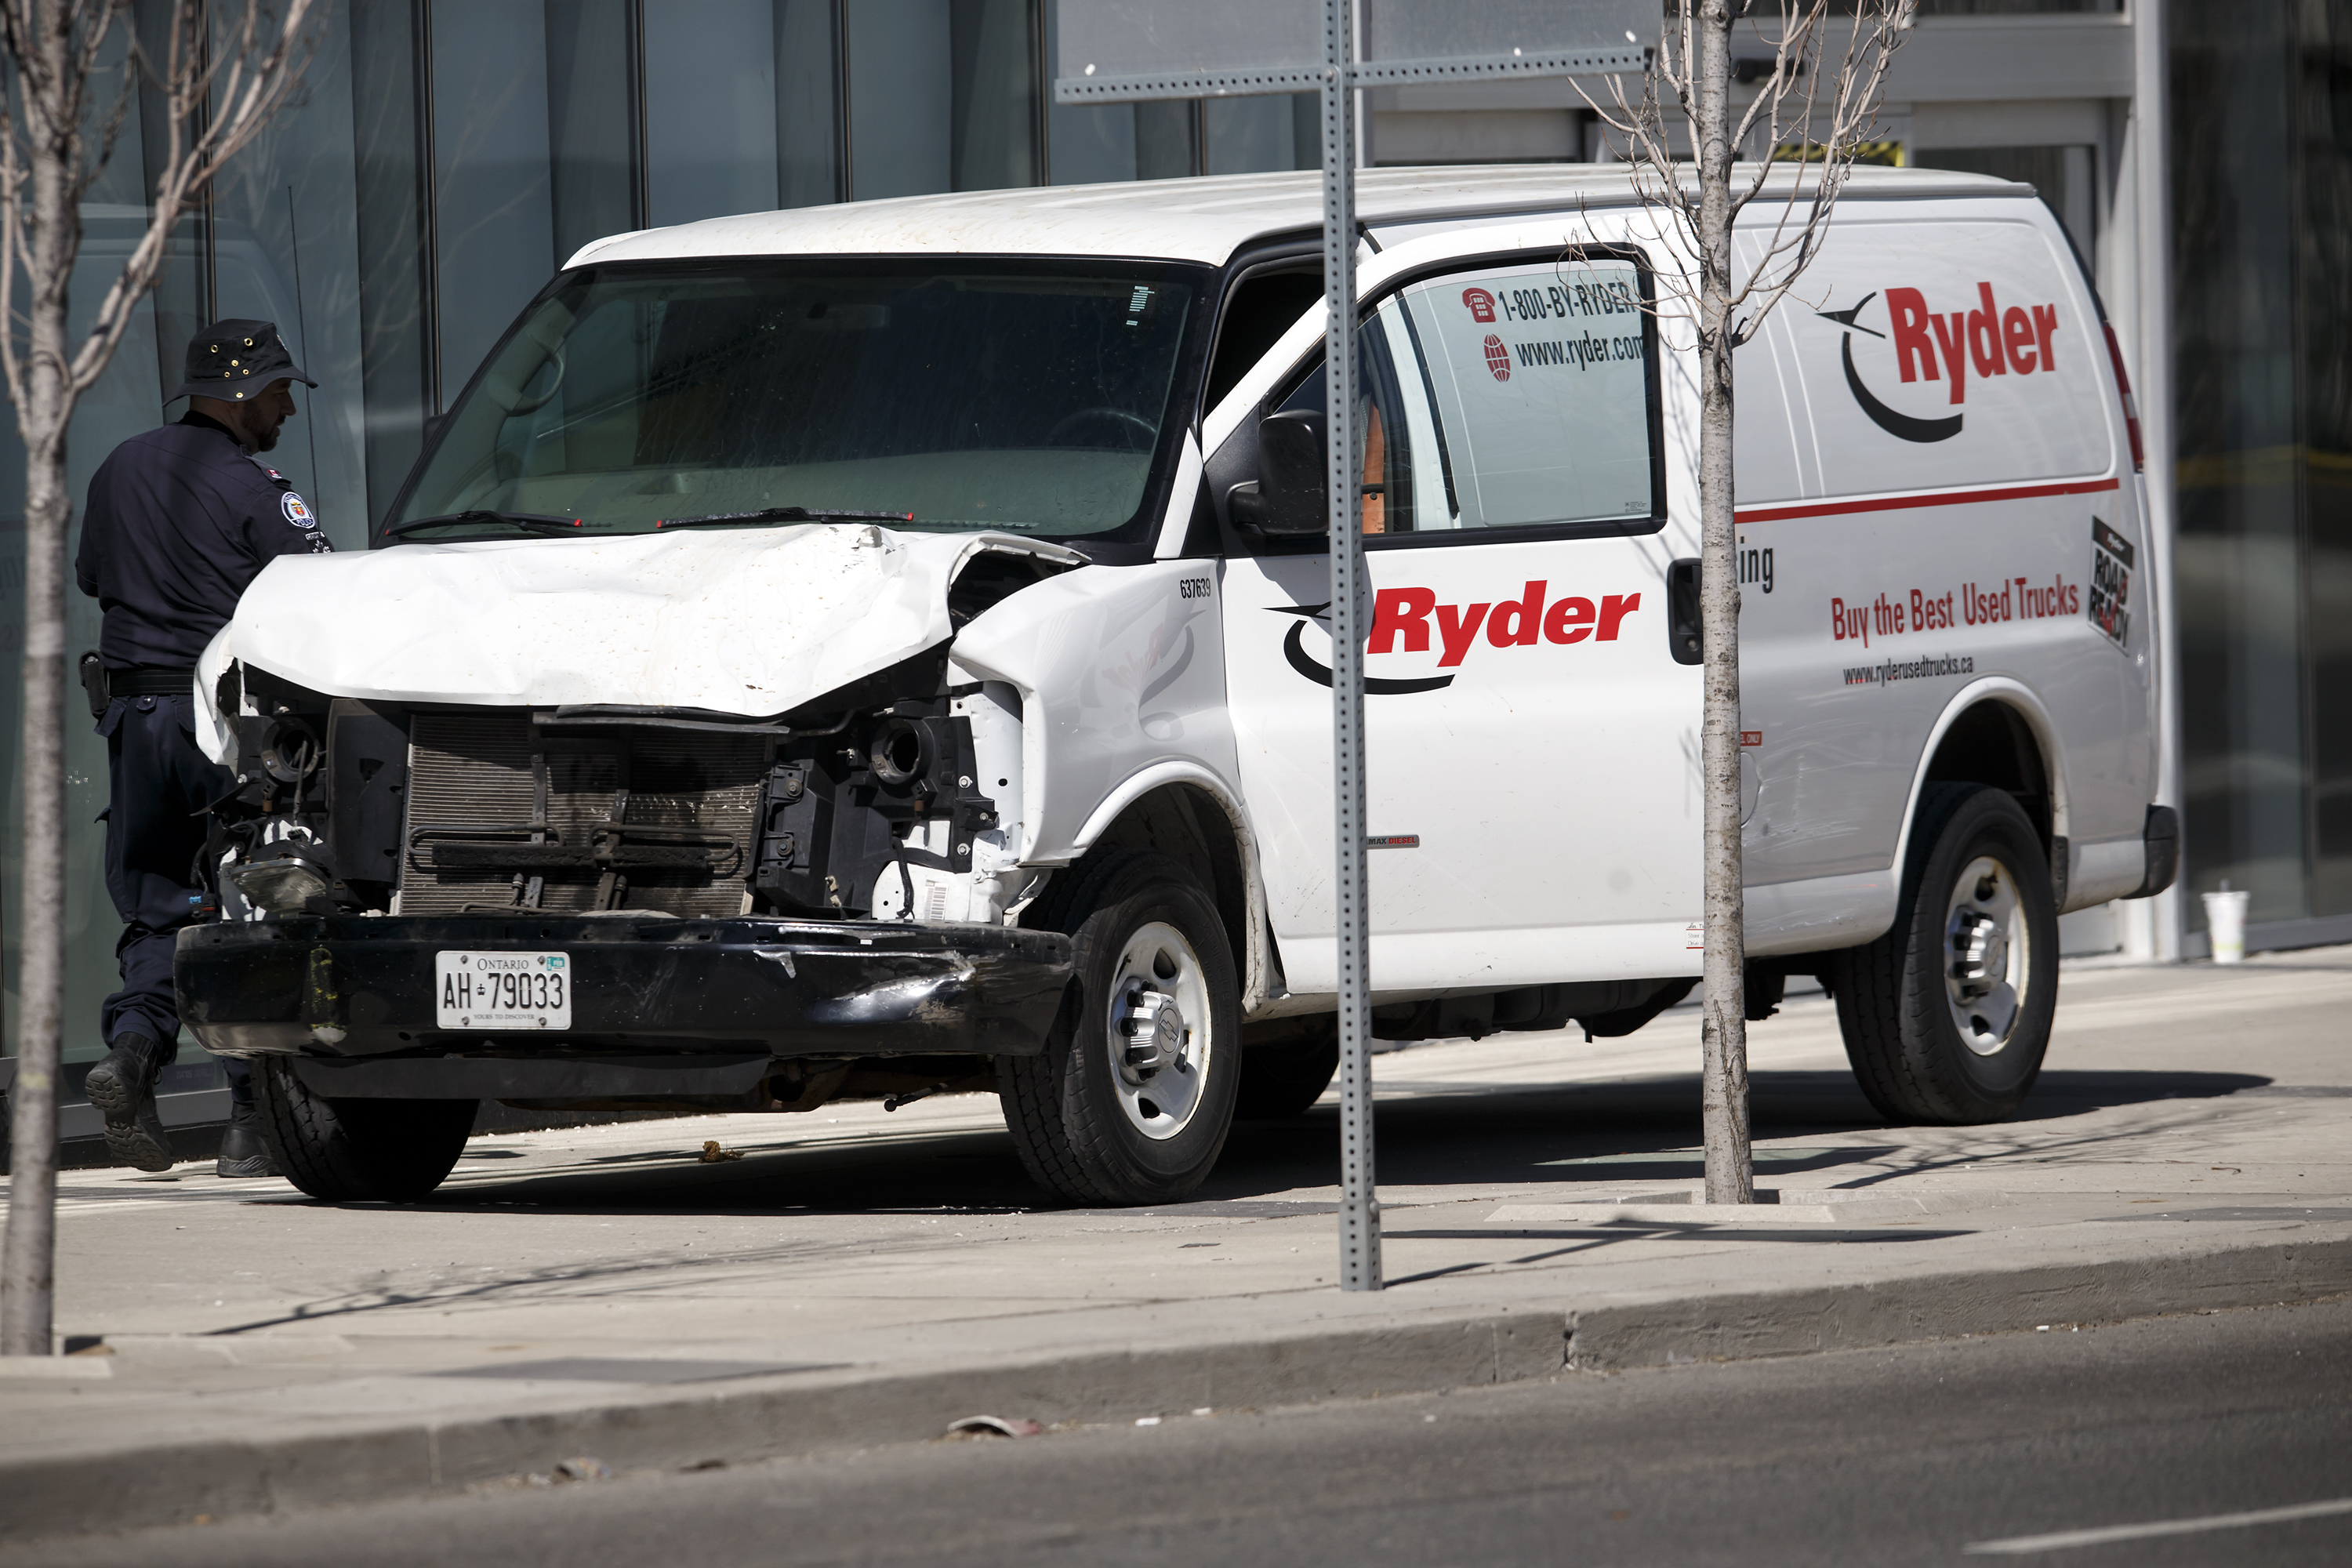 Police inspect a van involved in a collision killing 10 people at Yonge Street and Finch Avenue in Toronto, Canada, that may have been carried out by an incel